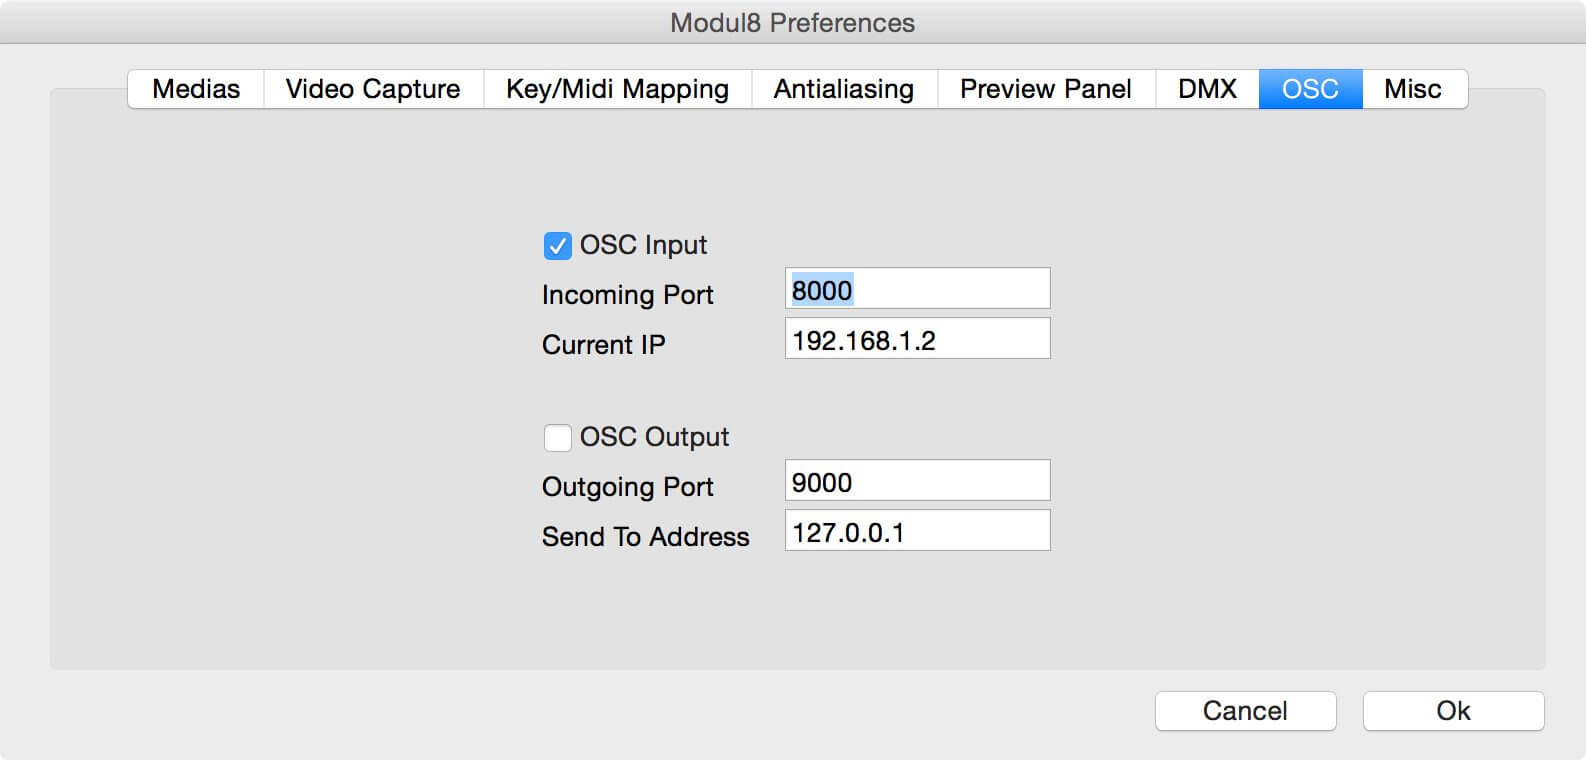 OSC Preferences in Modul8 2.9